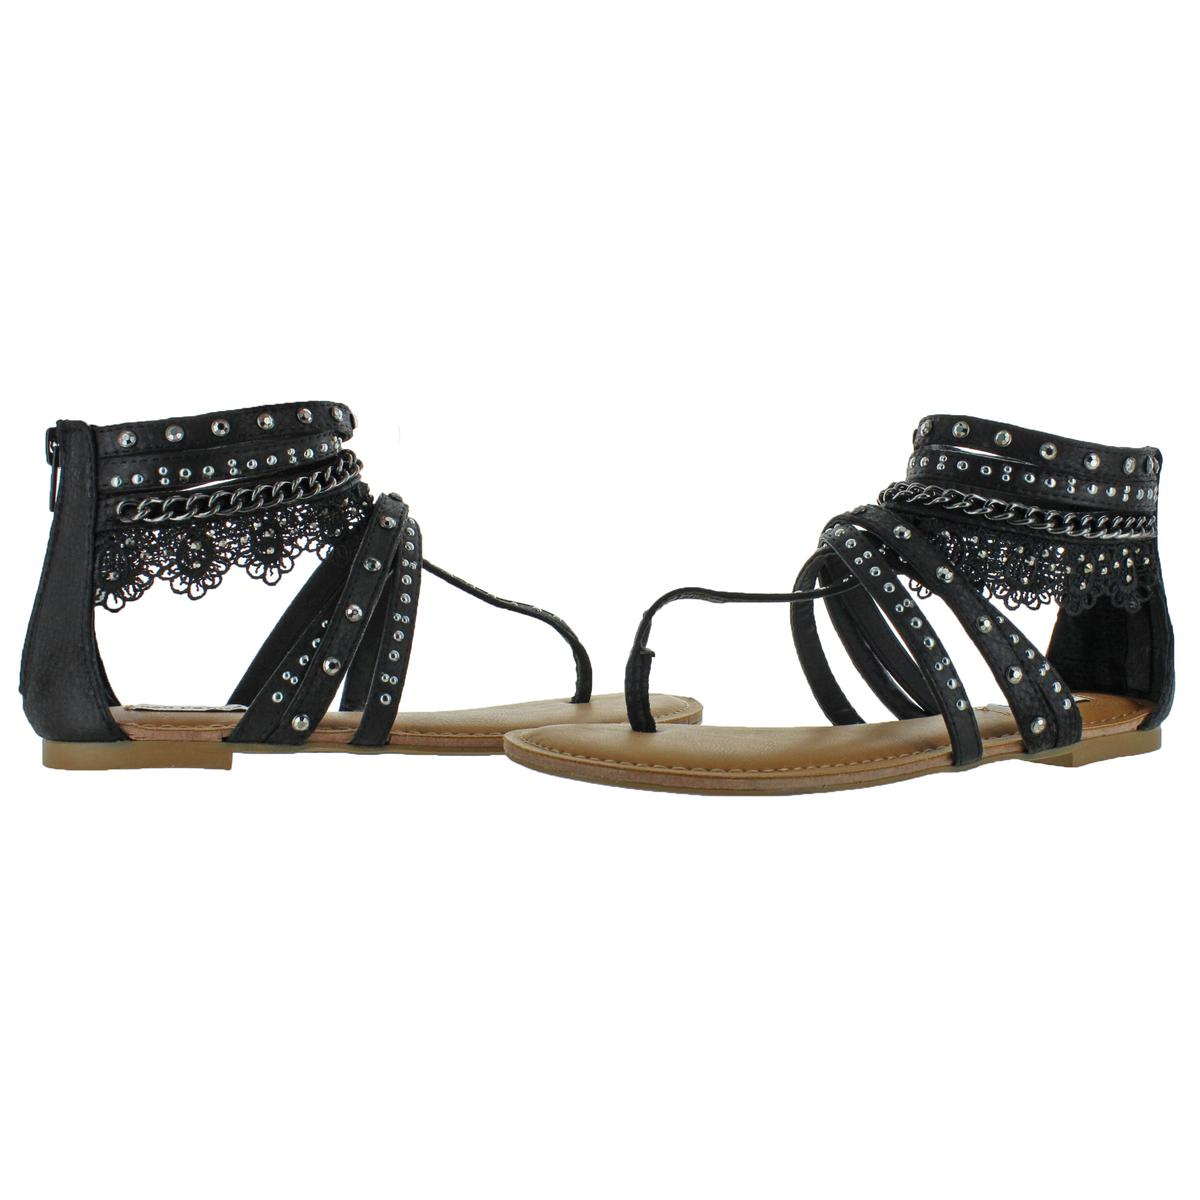 Not-Rated-Women-039-s-Willow-Faux-Leather-Studded-Thong-Gladiator-Sandals thumbnail 3